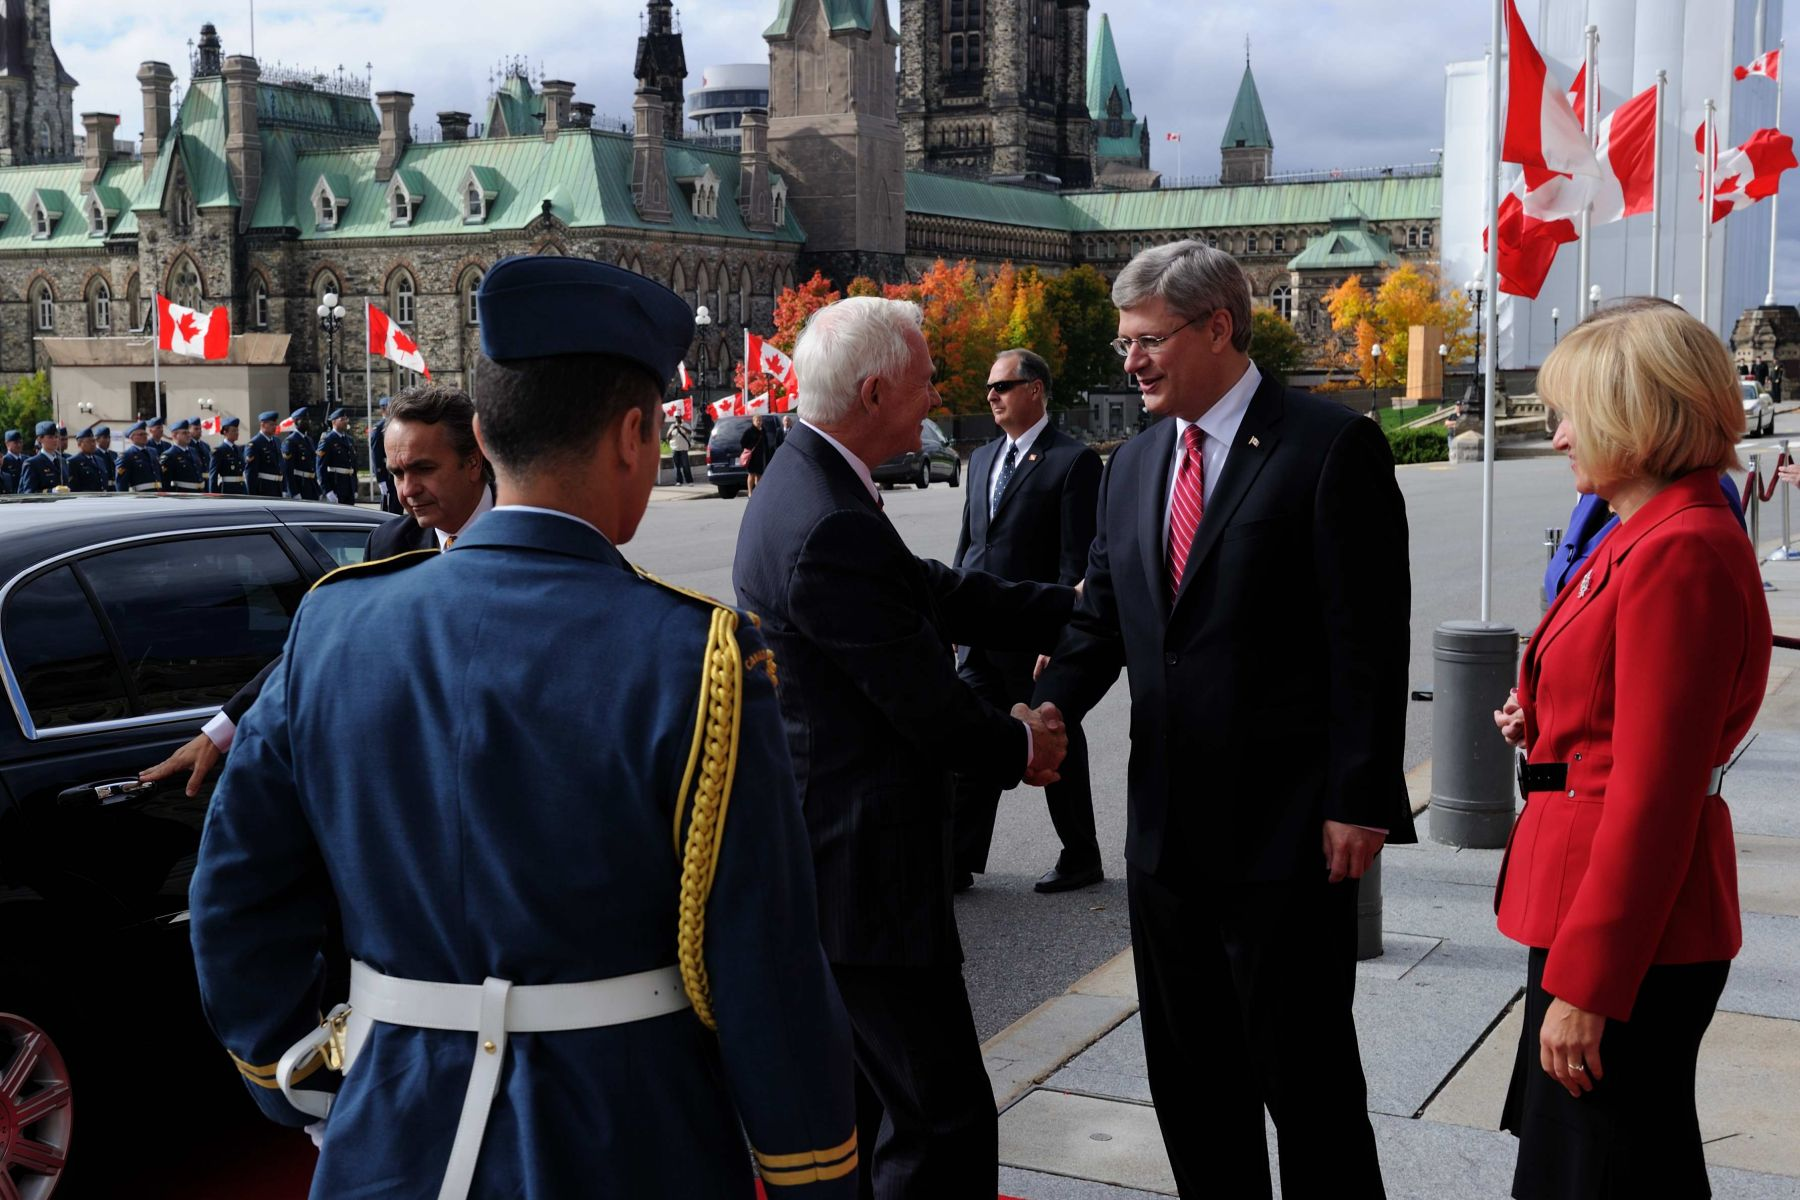 The Governor General Designate is greeted by Prime Minister Stephen Harper at Parliament Hill.